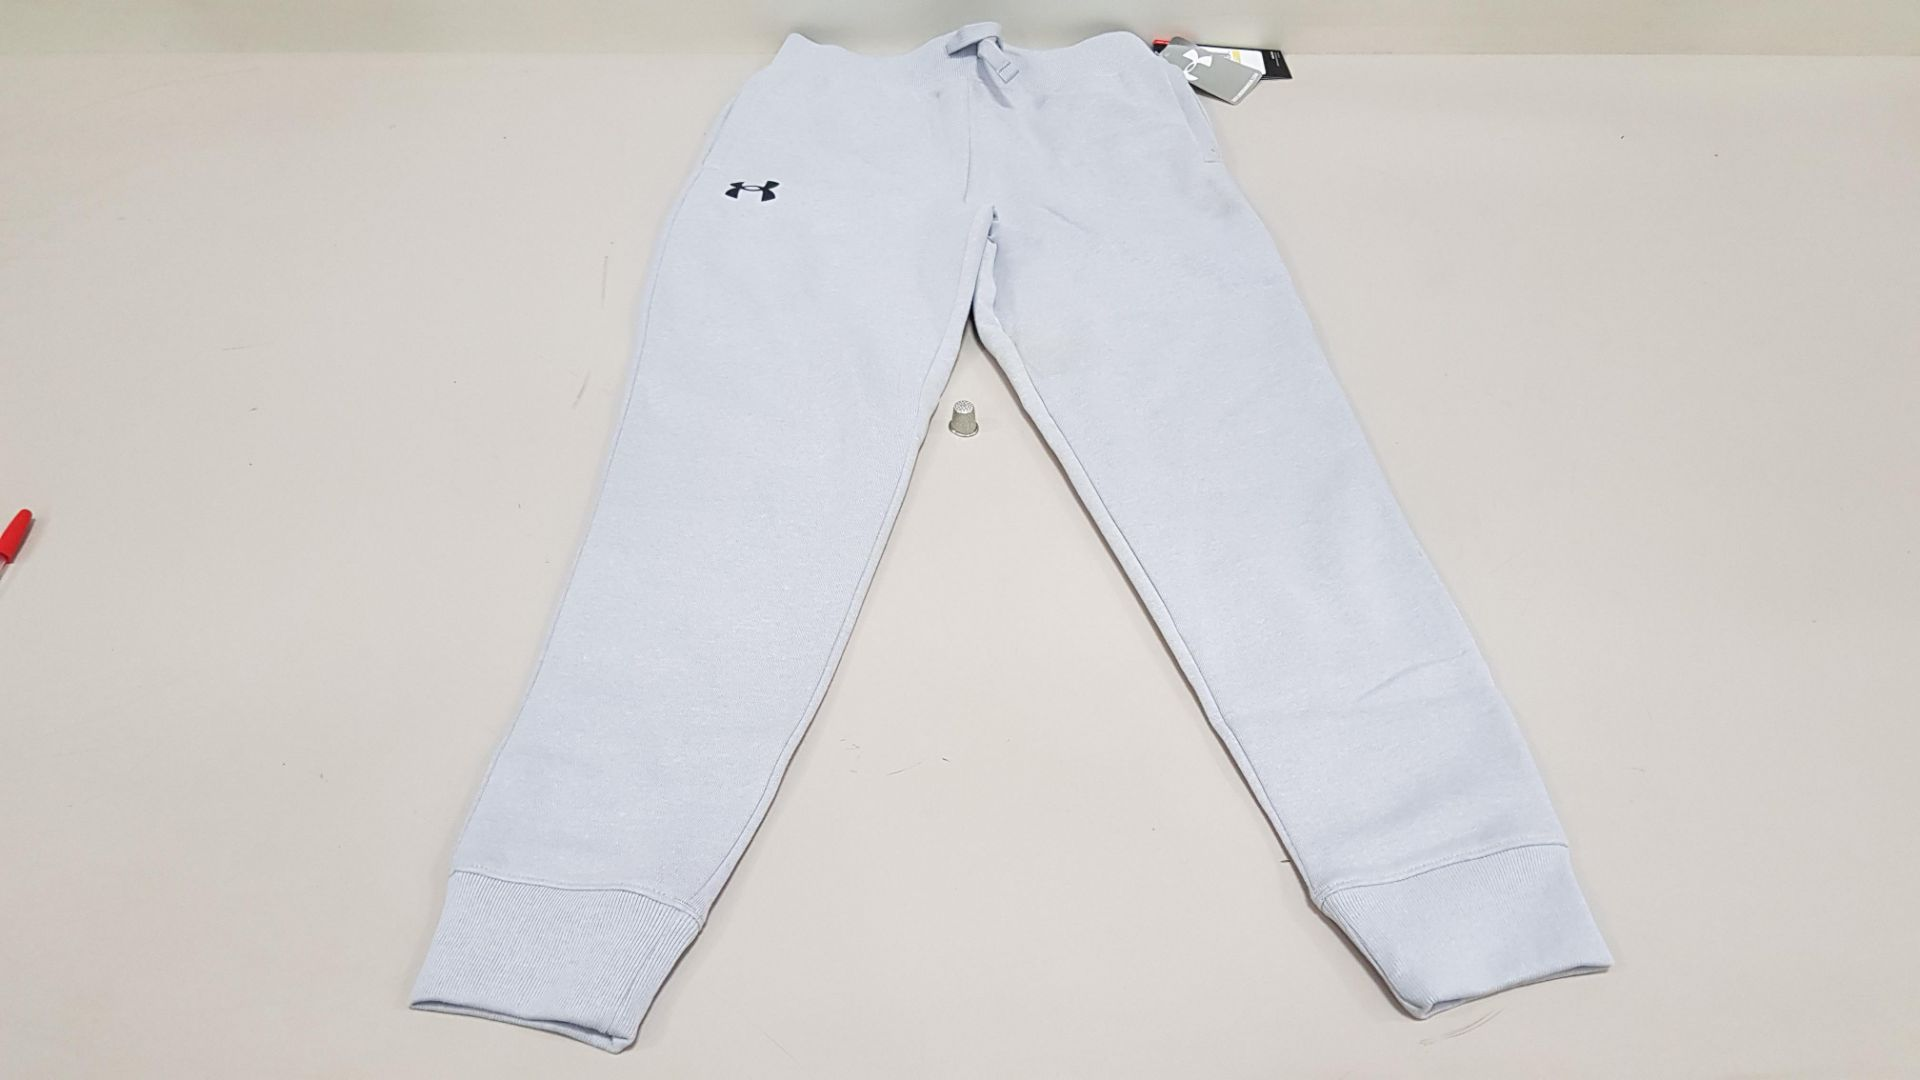 9 X BRAND NEW UNDER ARMOUR BOYS UNDER ARMOUR PANTS SIZE YLG/G